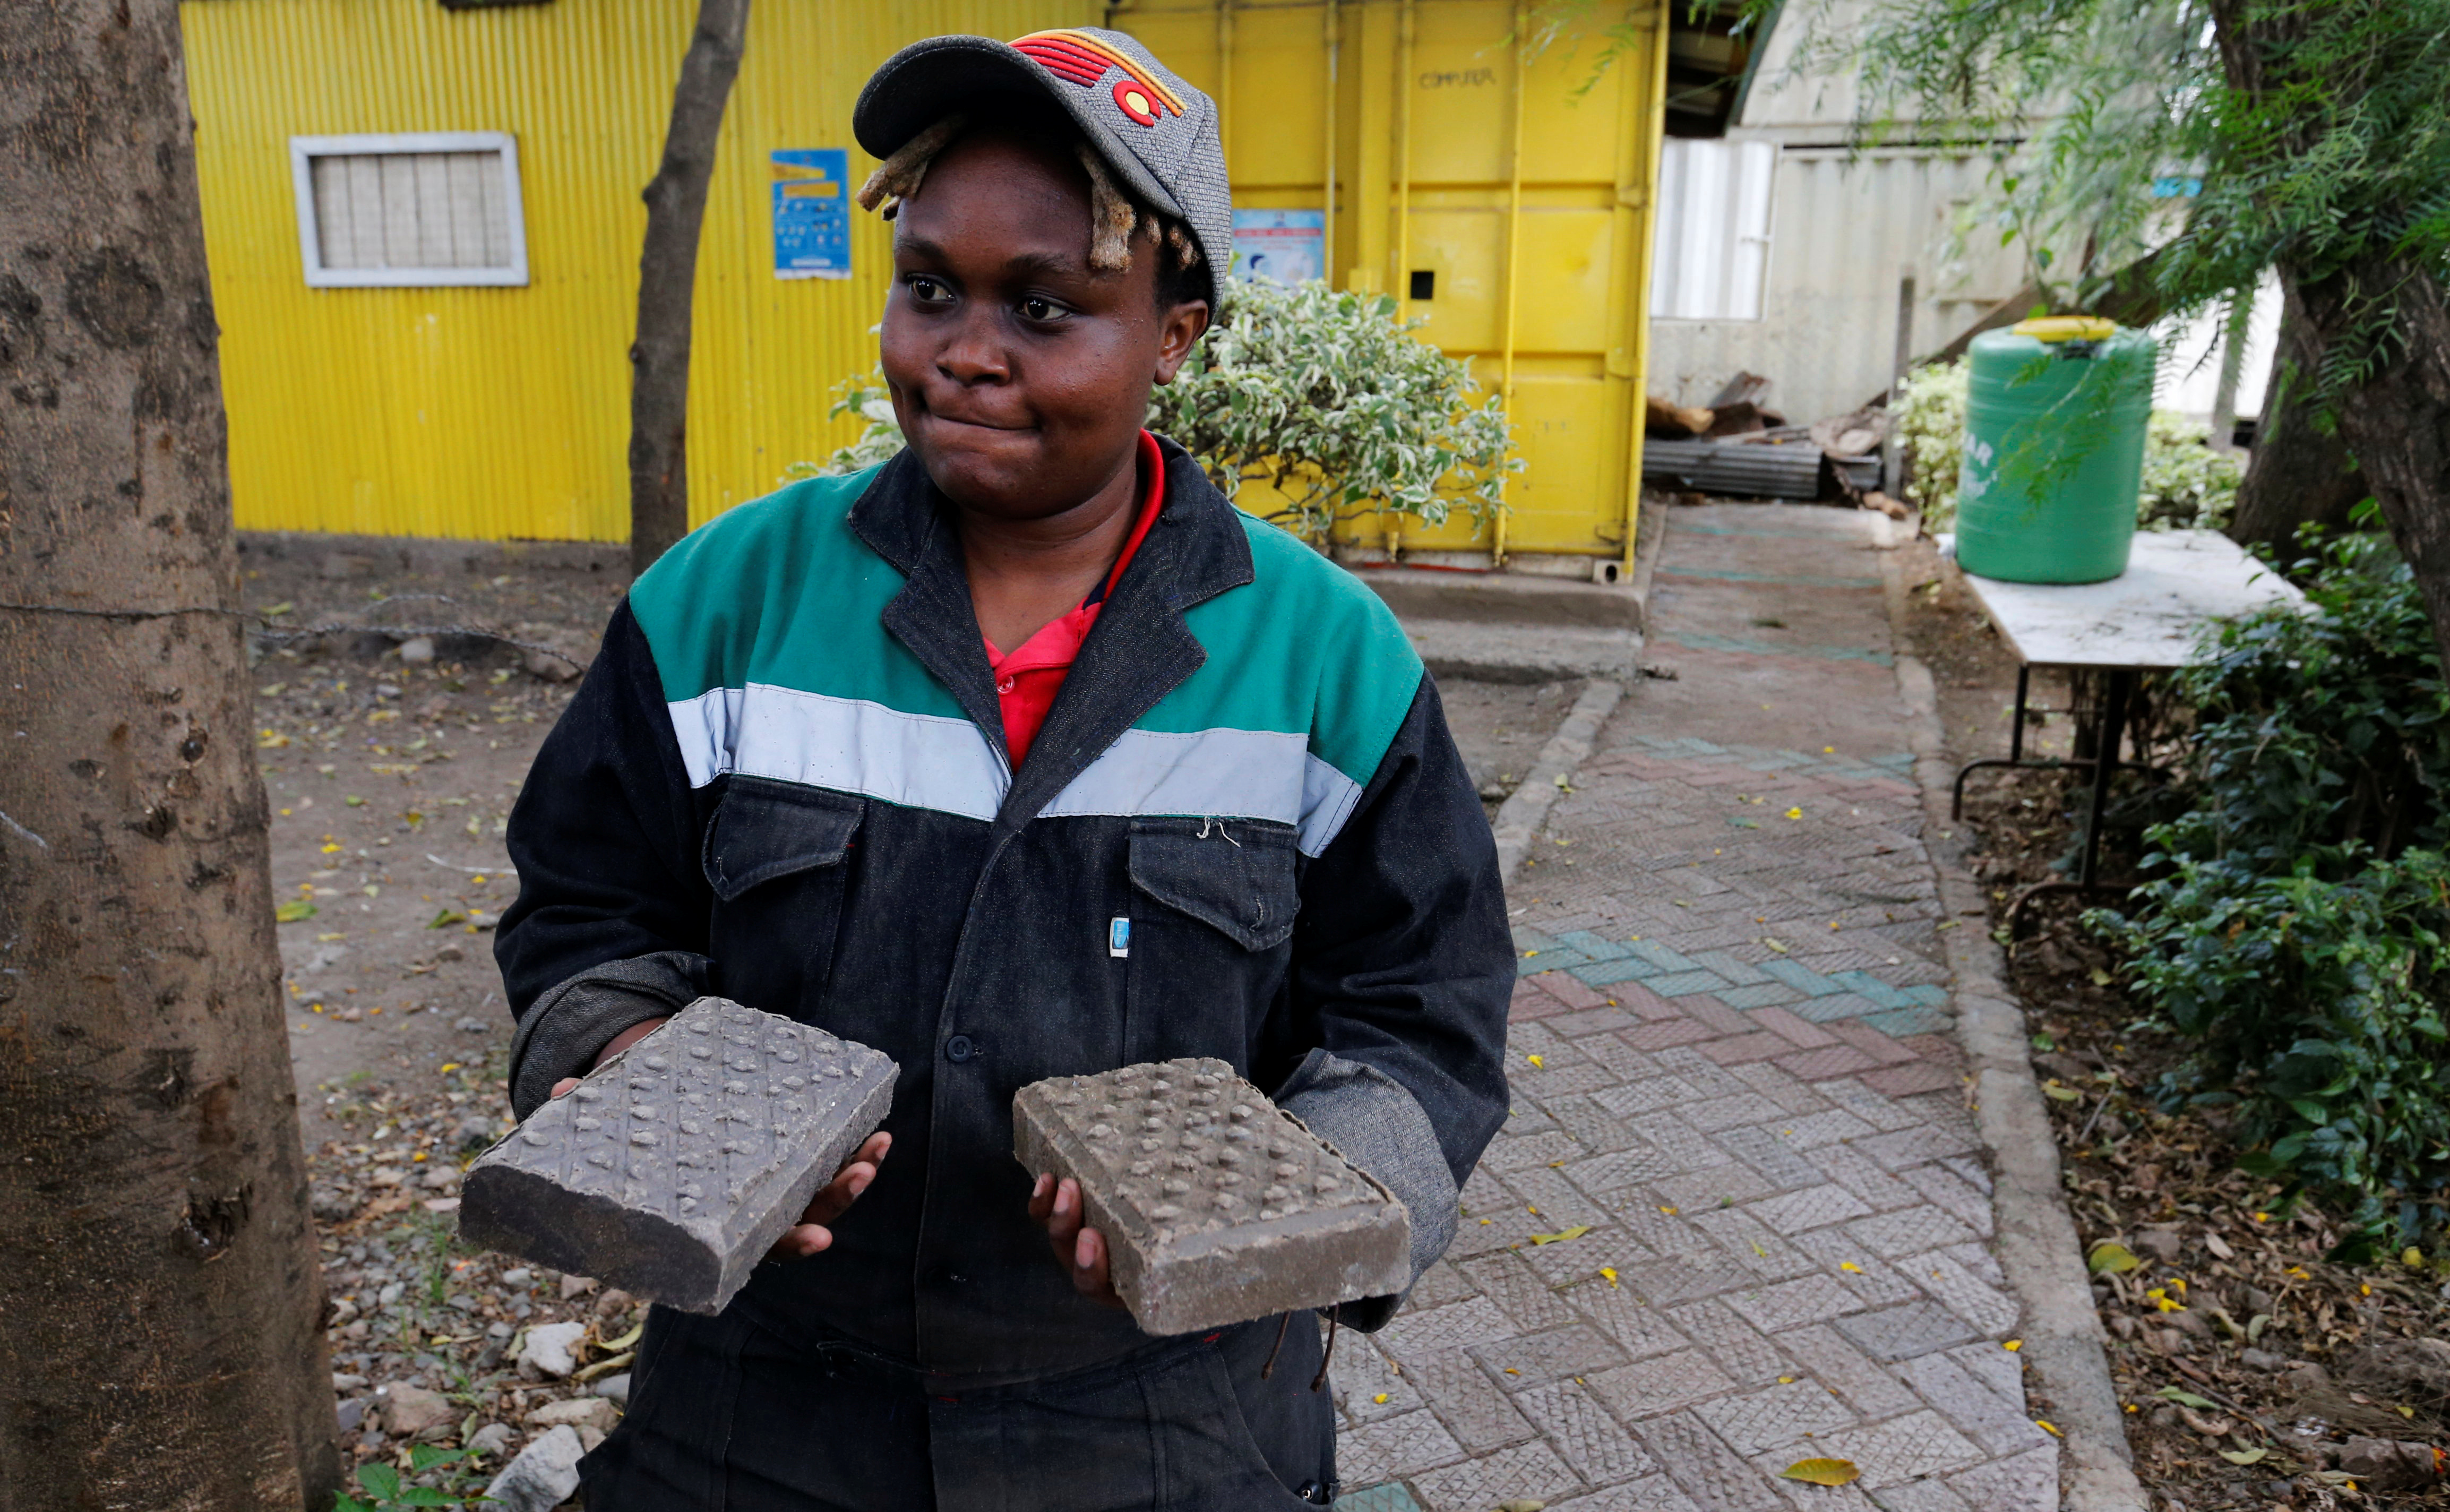 Nzambi Matee, founder of Gjenge Makers, a social enterprise that recycles and up-cycles waste plastic into construction products such as paving bricks holds Gjenge pavers in Nairobi, Kenya January 21, 2021. Picture taken January 21, 2021. REUTERS/Thomas Mukoya